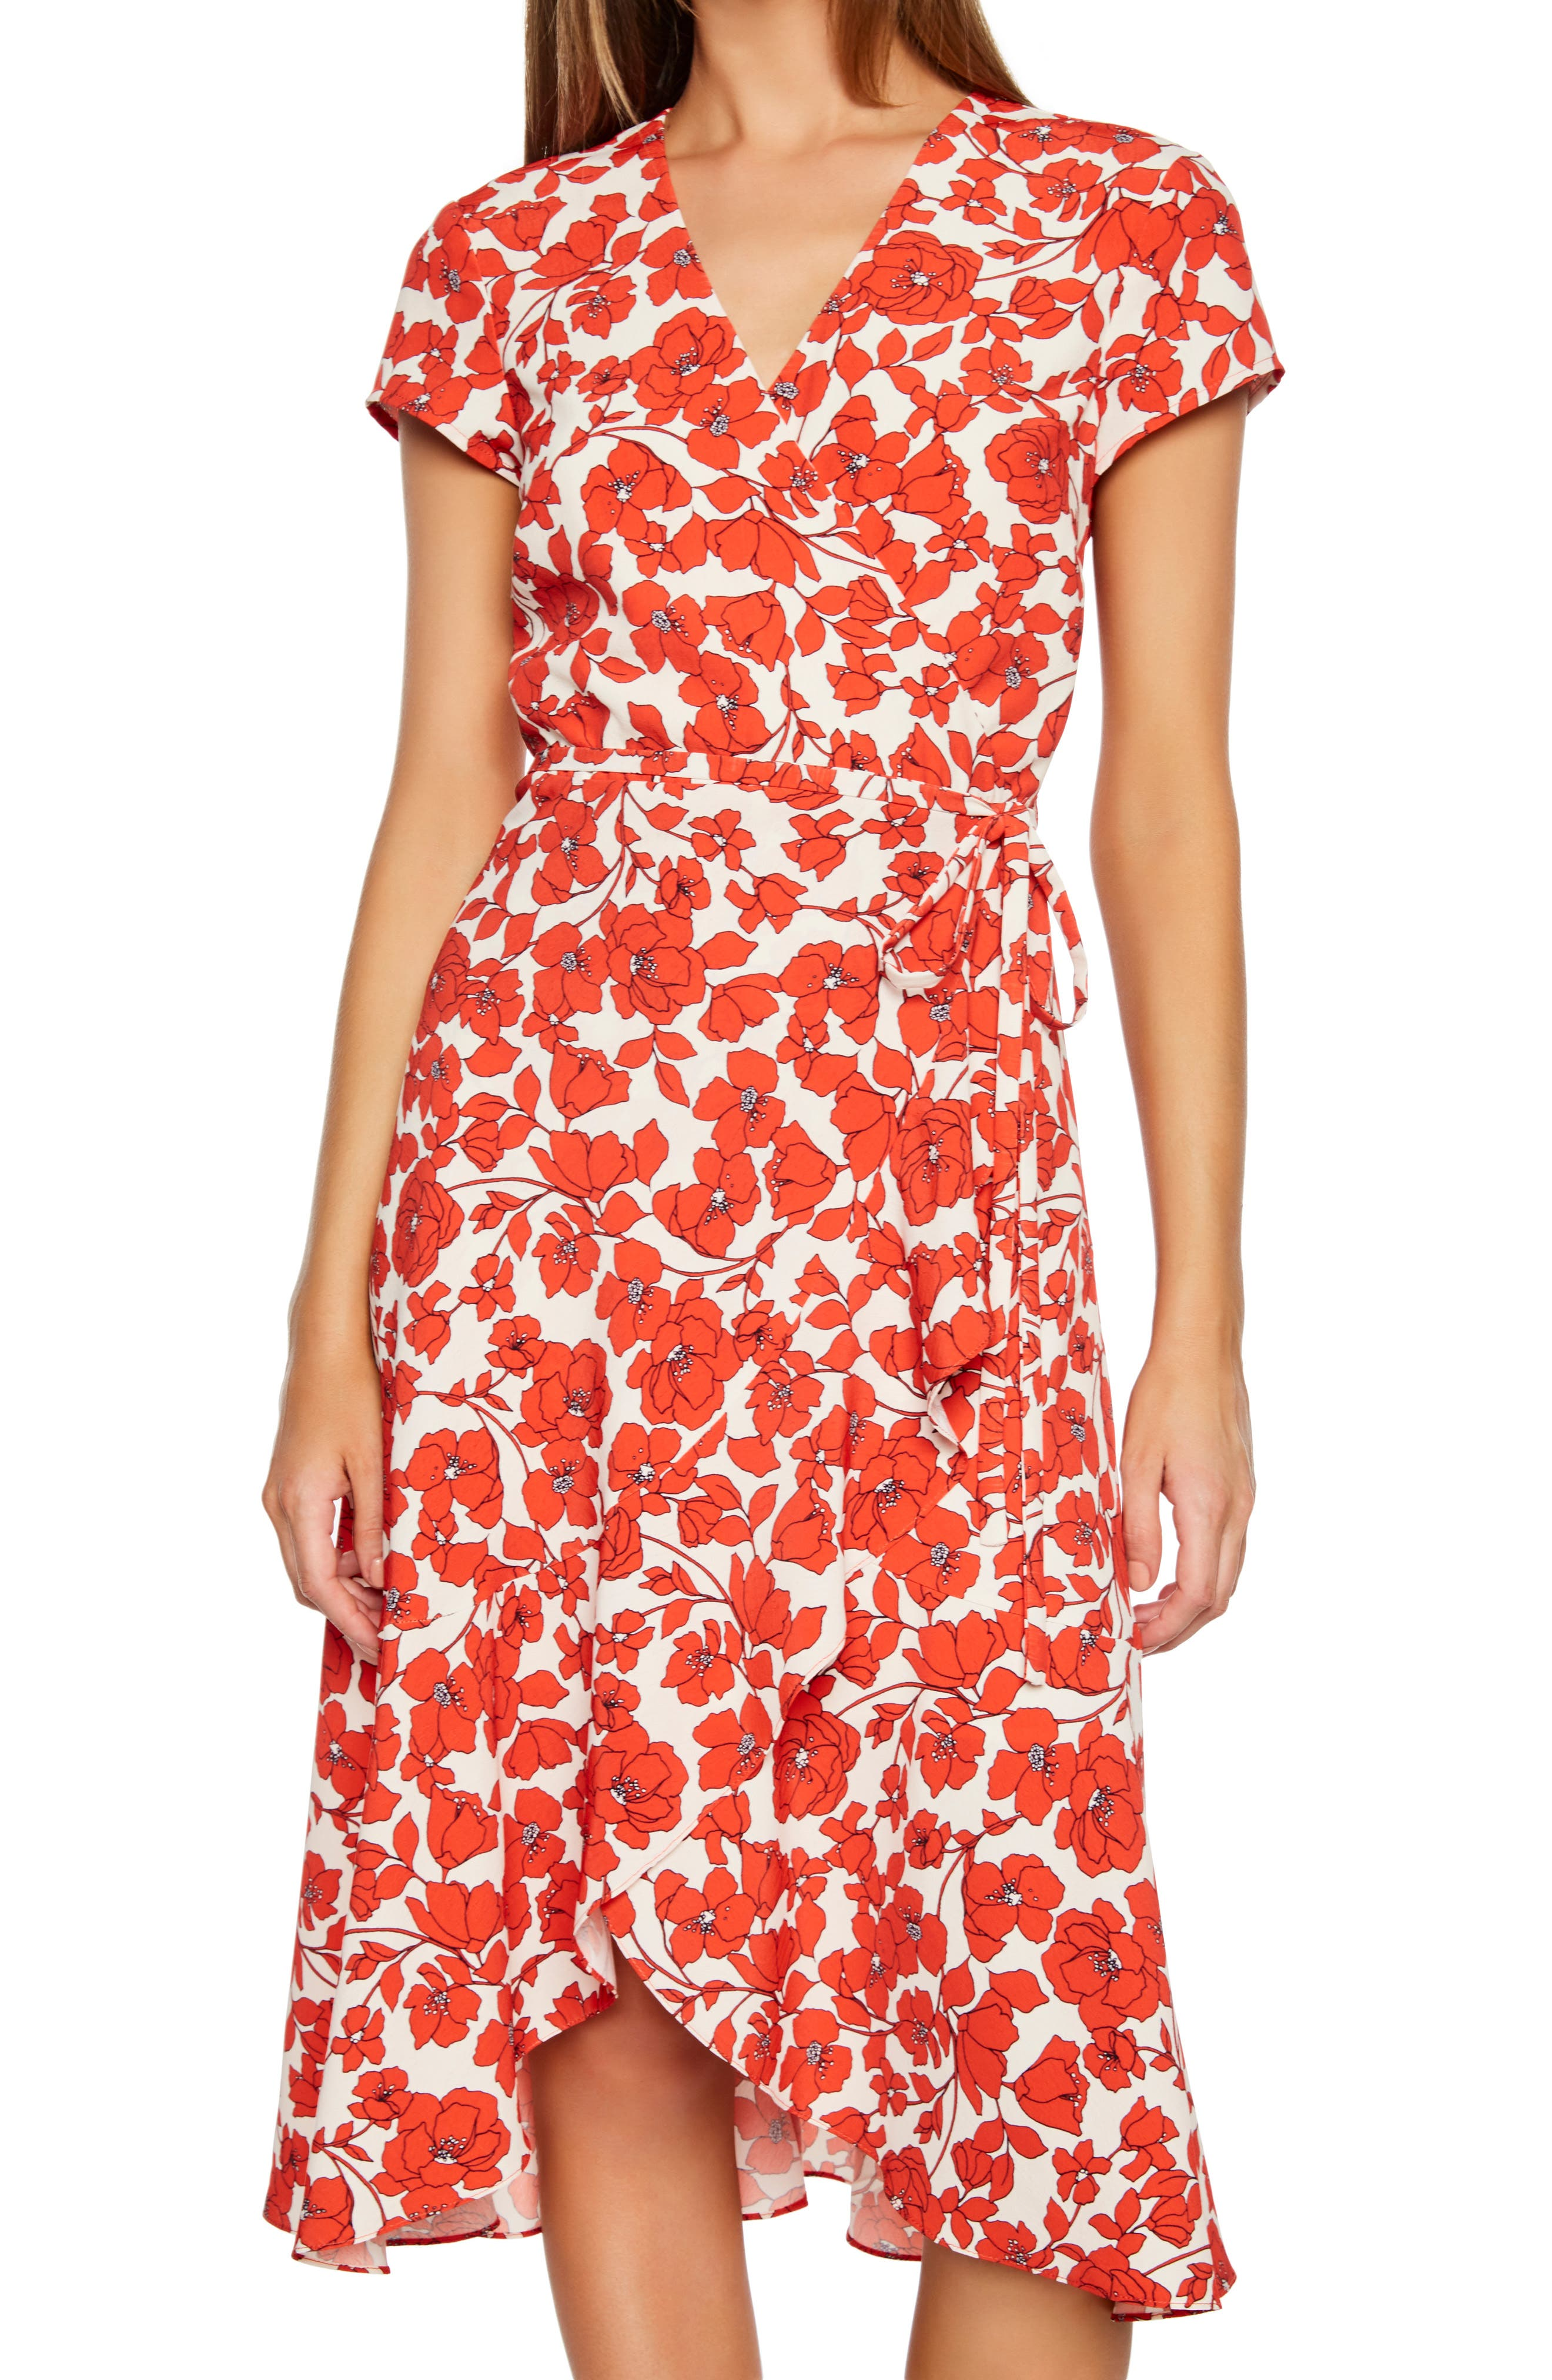 BARDOT,                             Fiesta Floral Midi Dress,                             Alternate thumbnail 5, color,                             ORANGE FLORAL